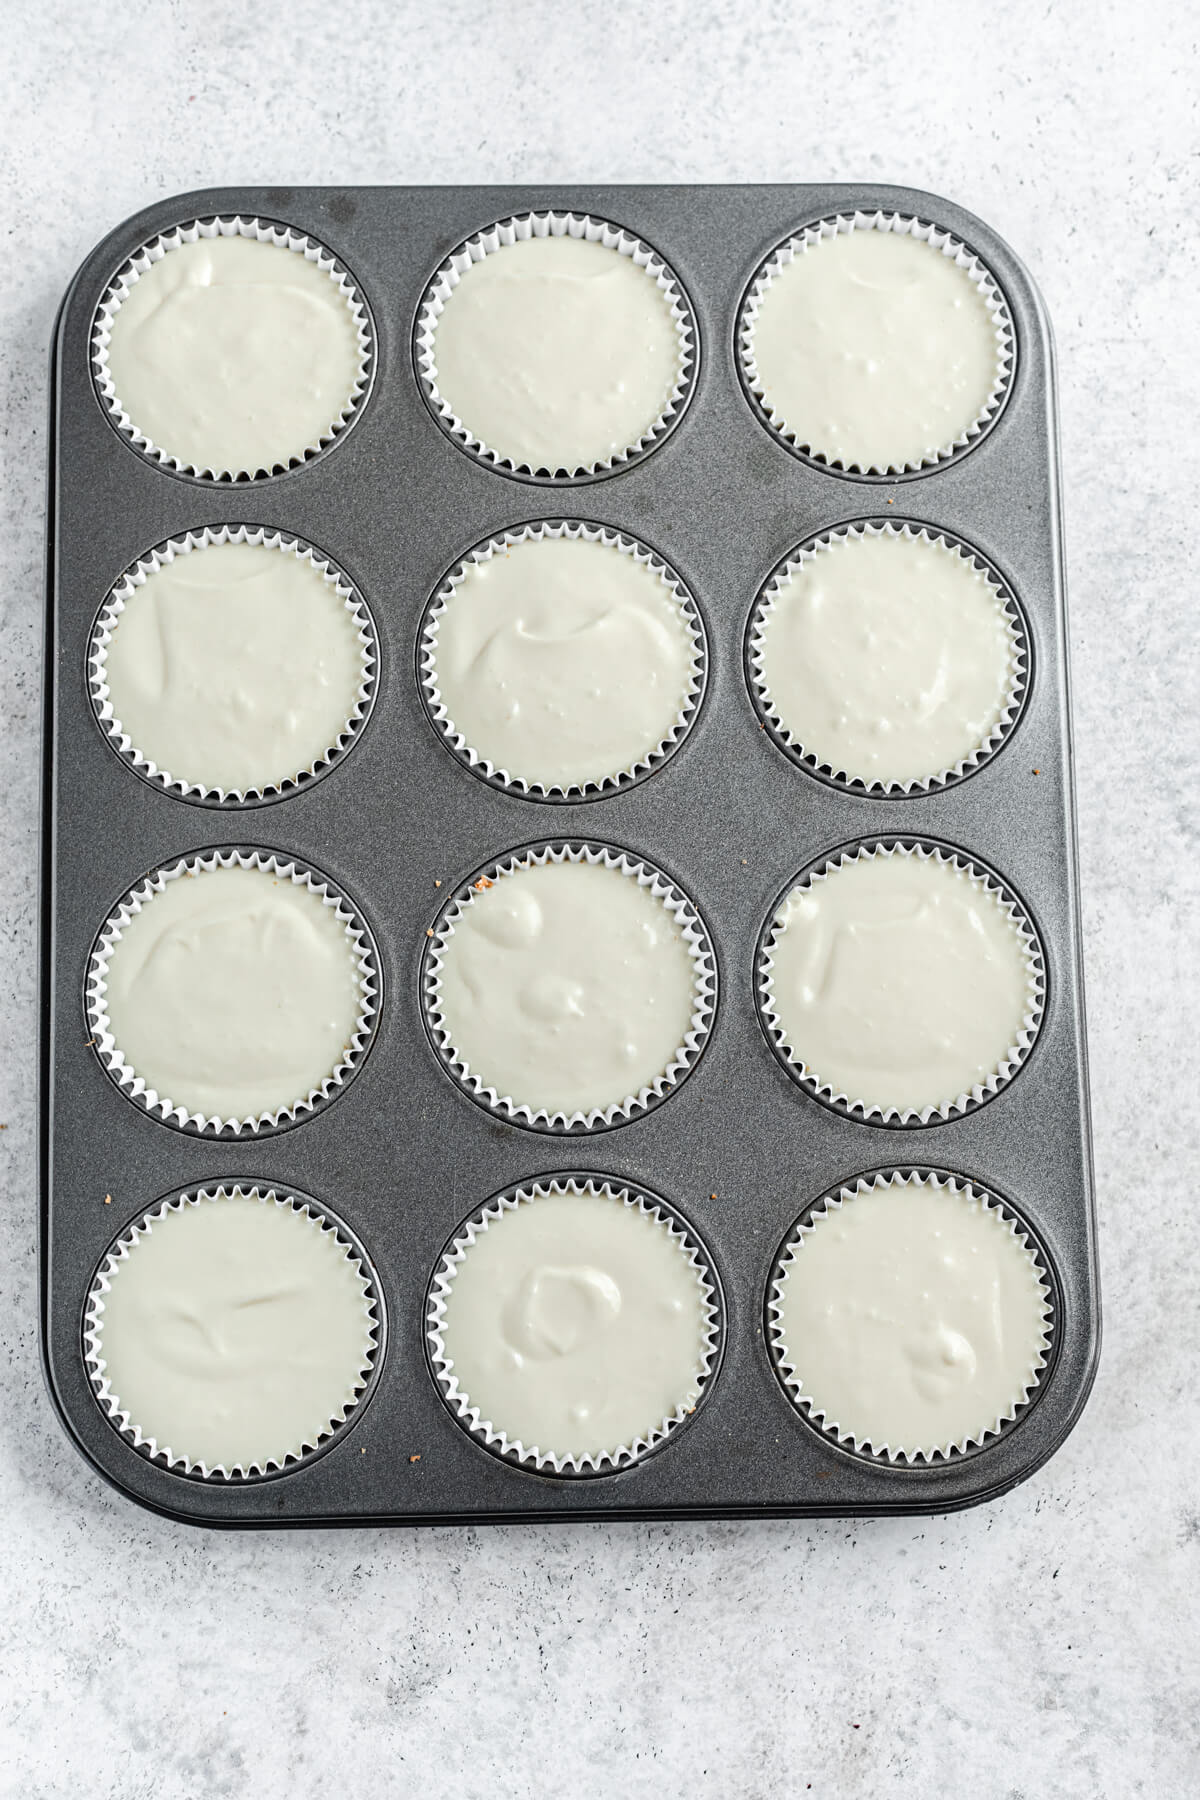 unbaked cheesecake batter in cupcake liners